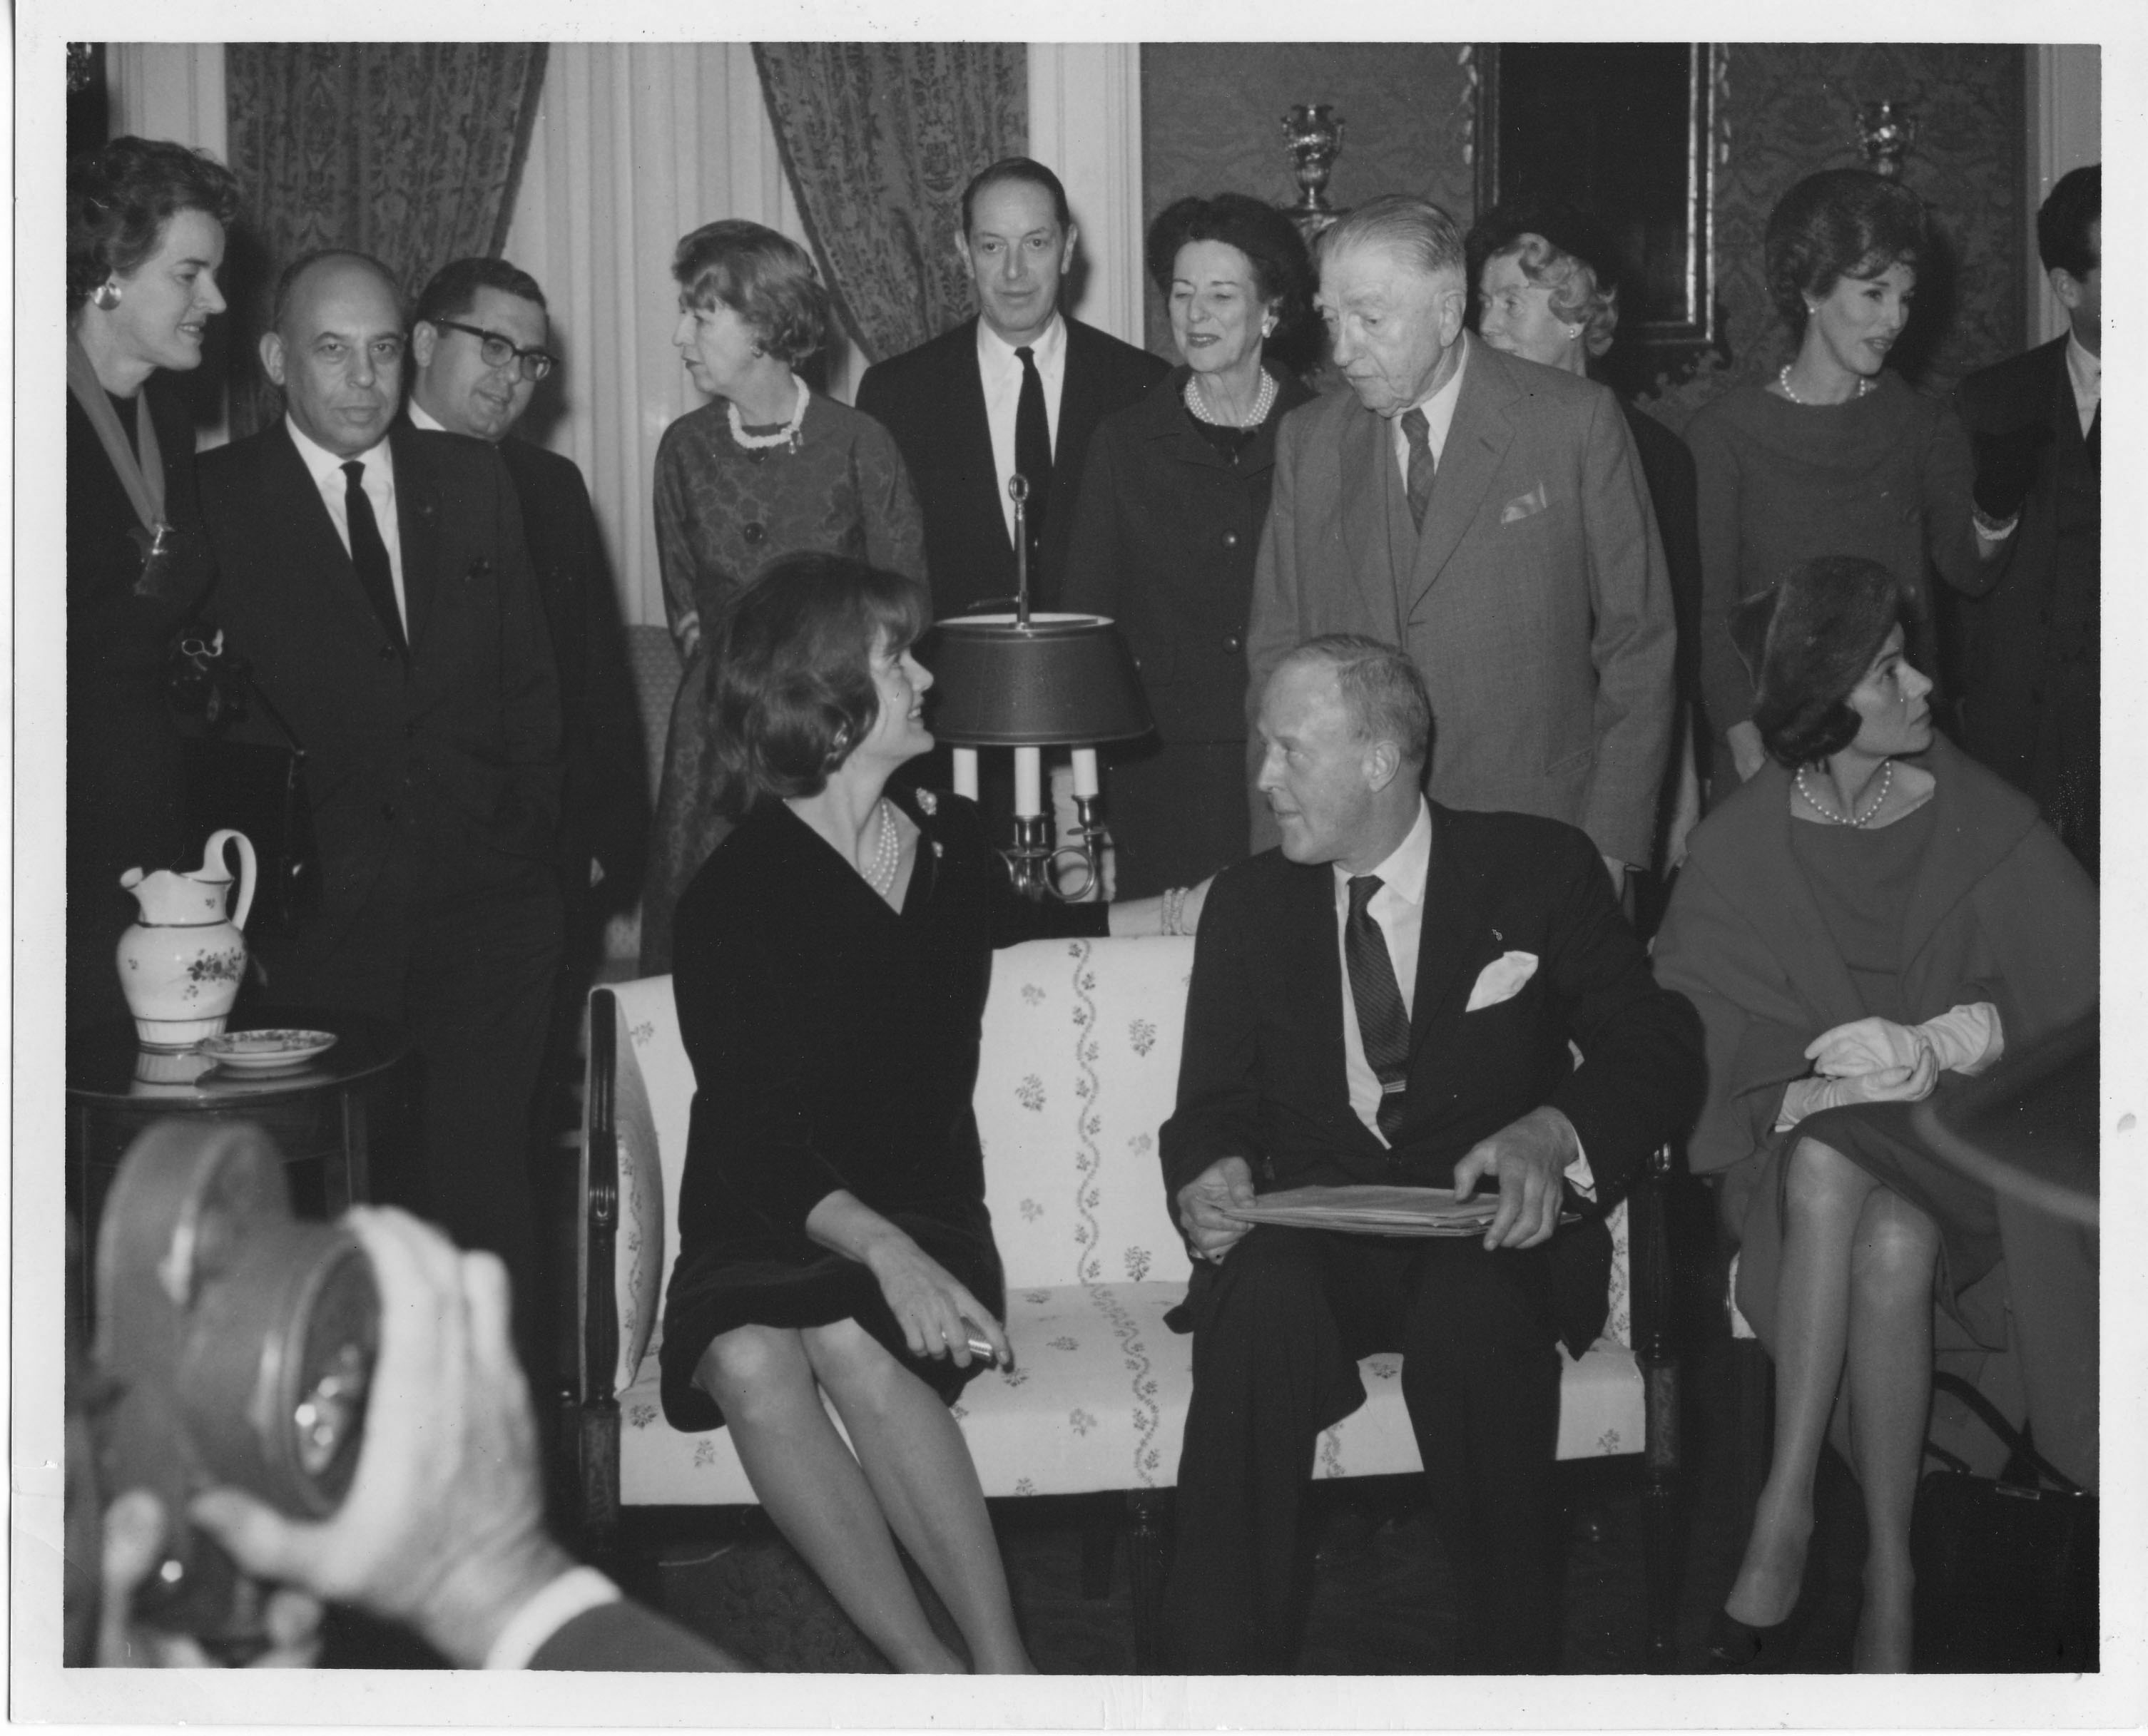 Jacqueline Kennedy (seated, left) and H. F. du Pont (standing fourth from right), along with members of the Paintings Committee of the Fine Arts Committee, December 1961.